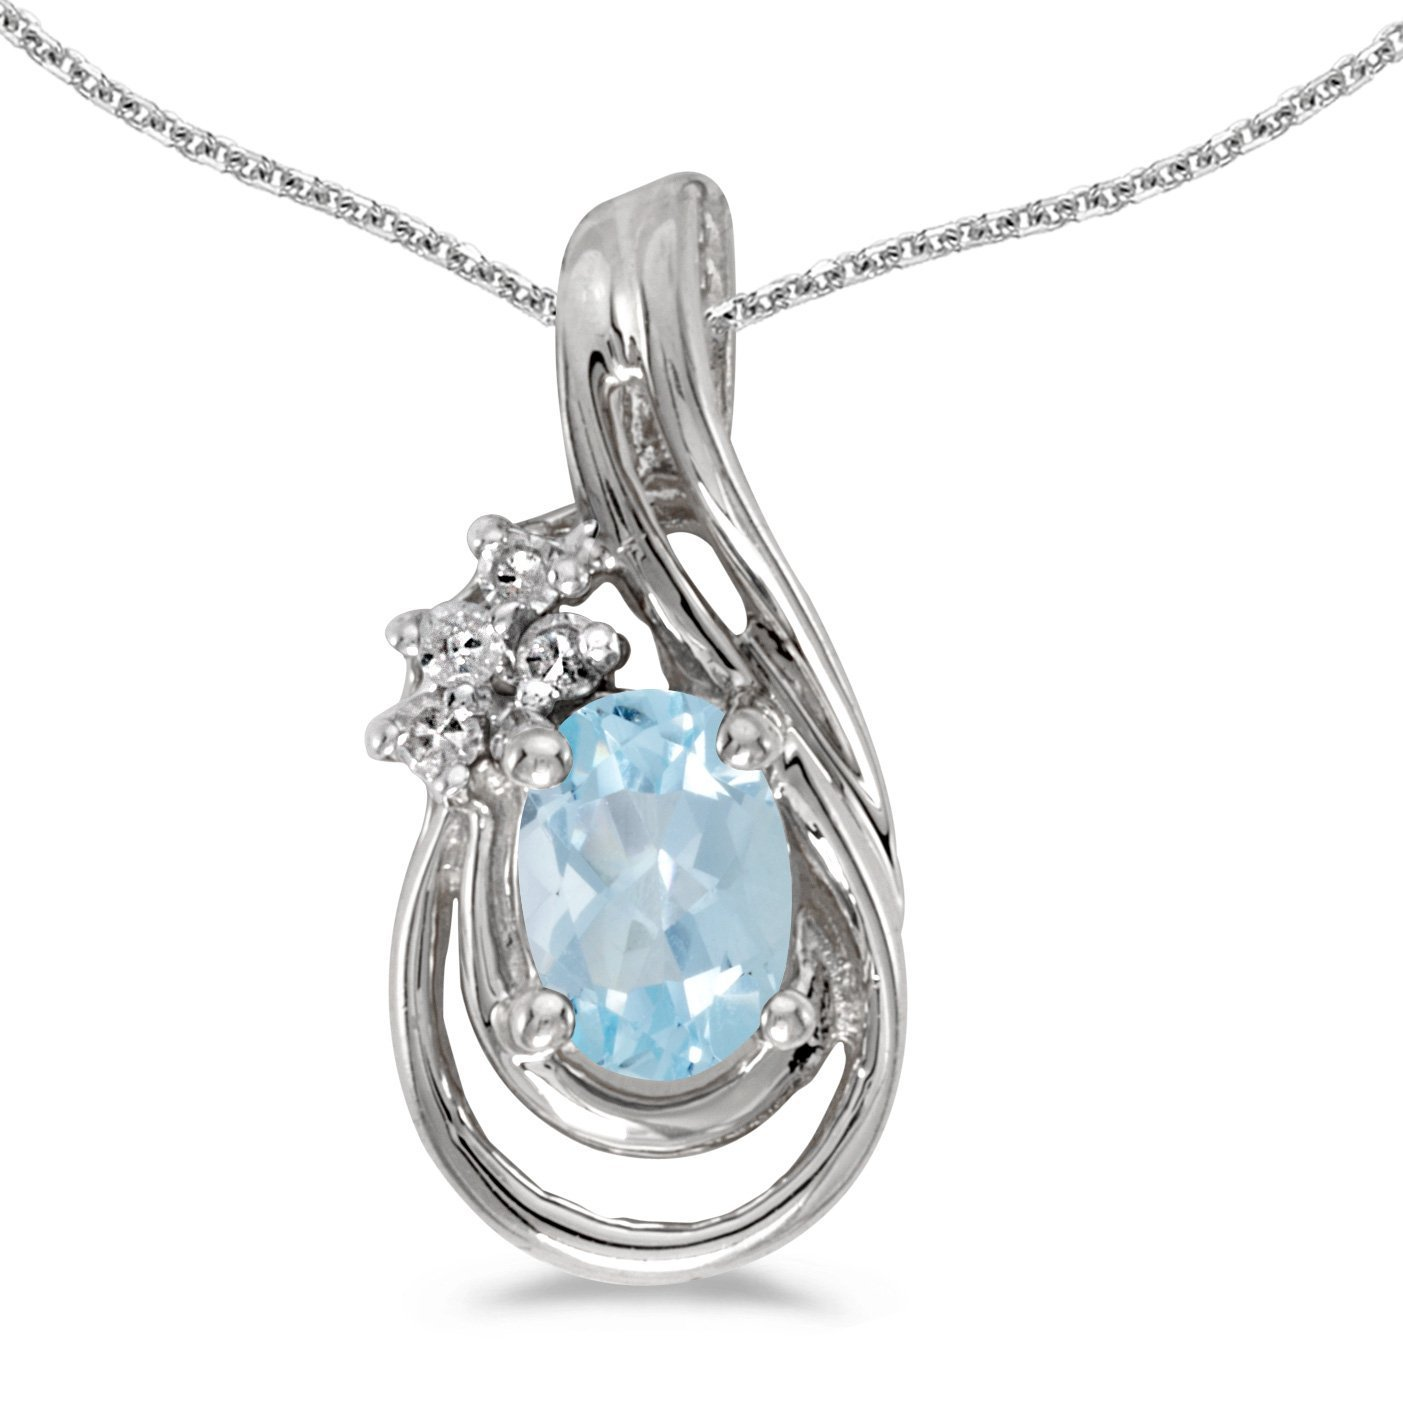 FB Jewels Solid 10k White Gold Genuine Birthstone Oval Gemstone And Diamond Teardrop Pendant 0.47 Cttw.